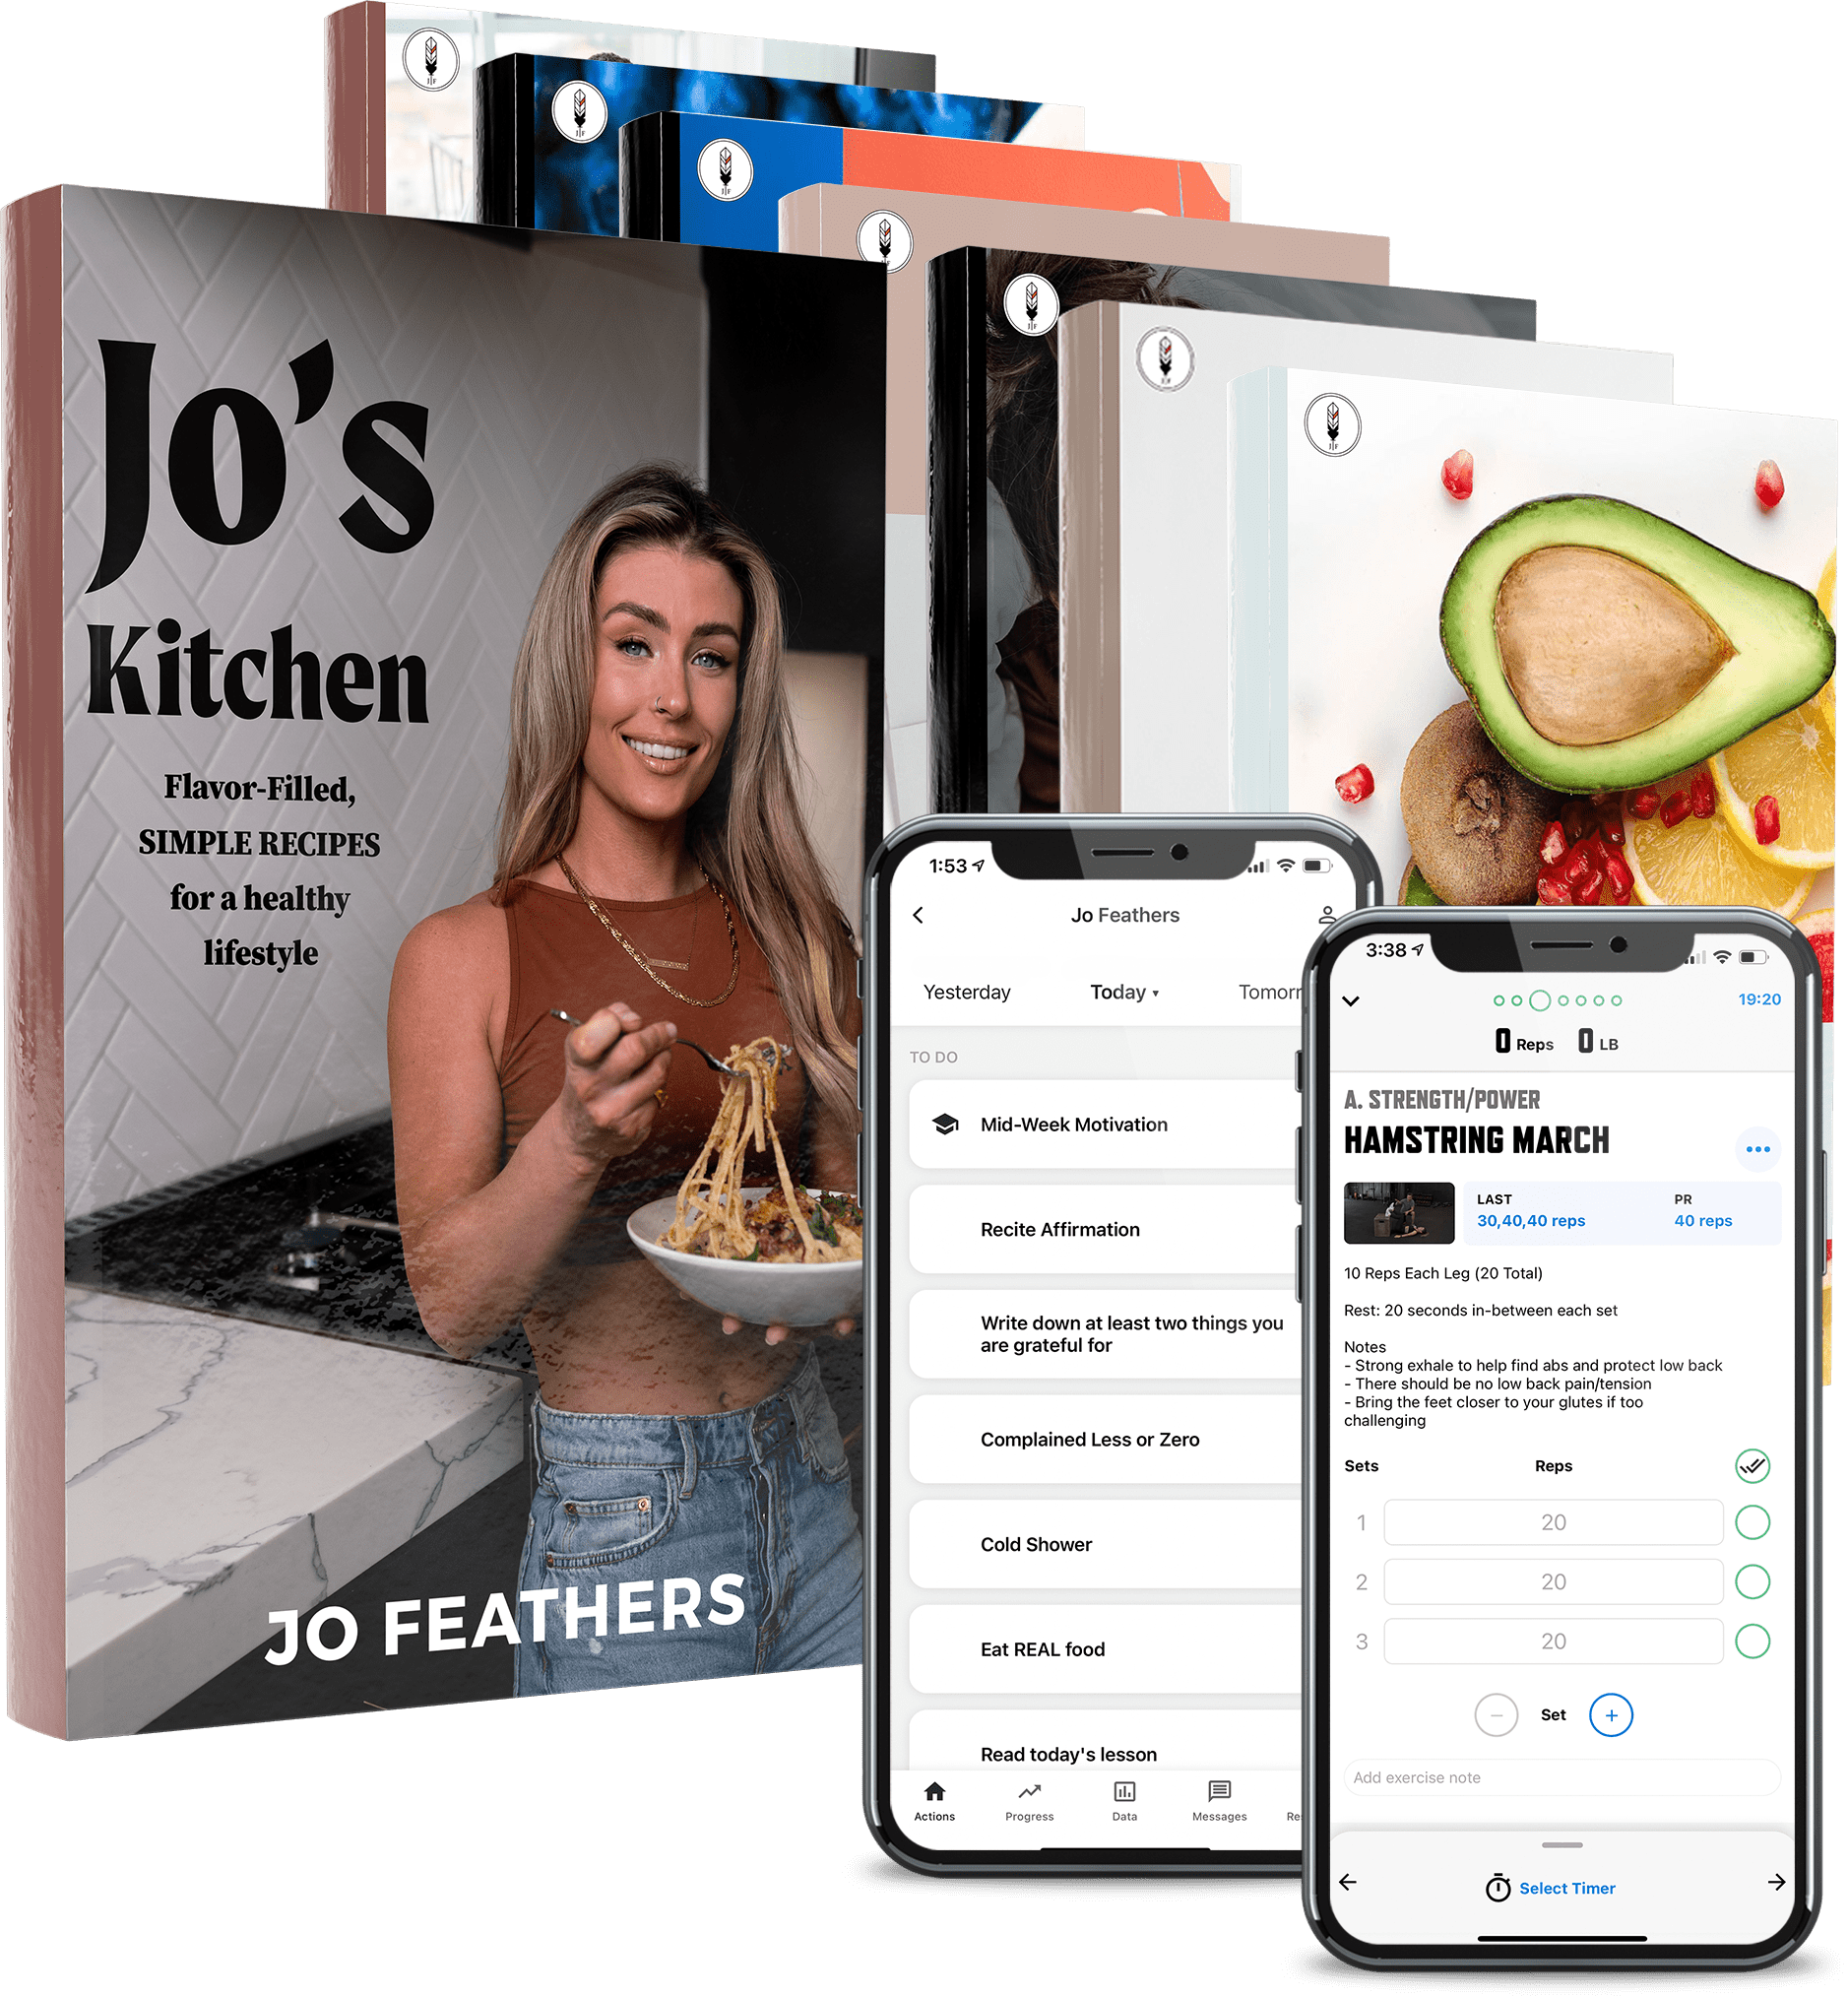 jo feathers offer stack